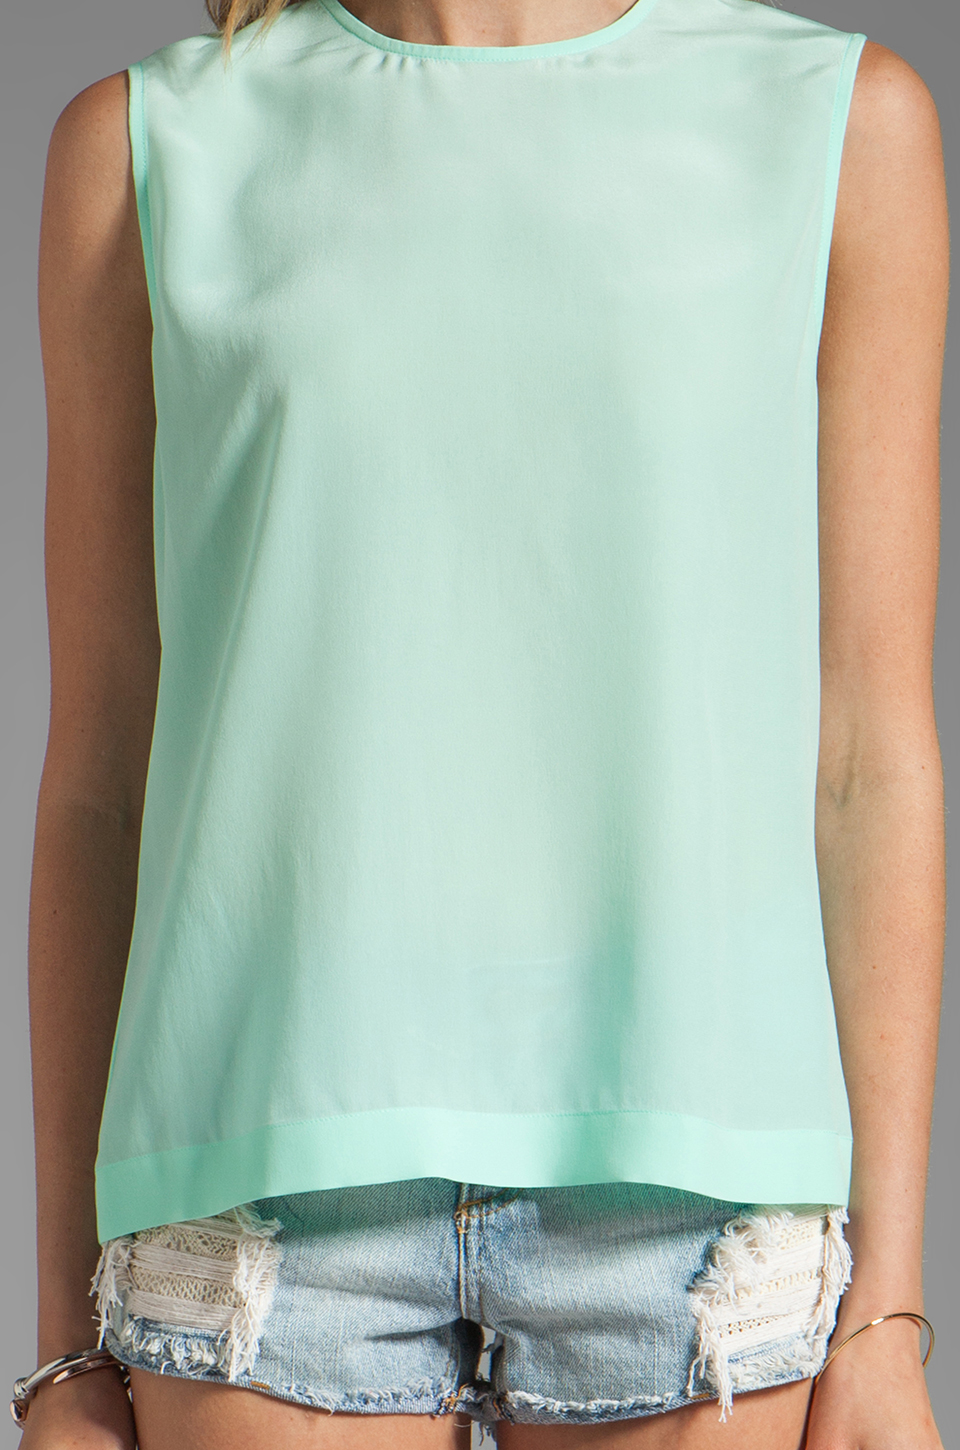 Equipment Reagan Sleeveless Blouse in Ice Green